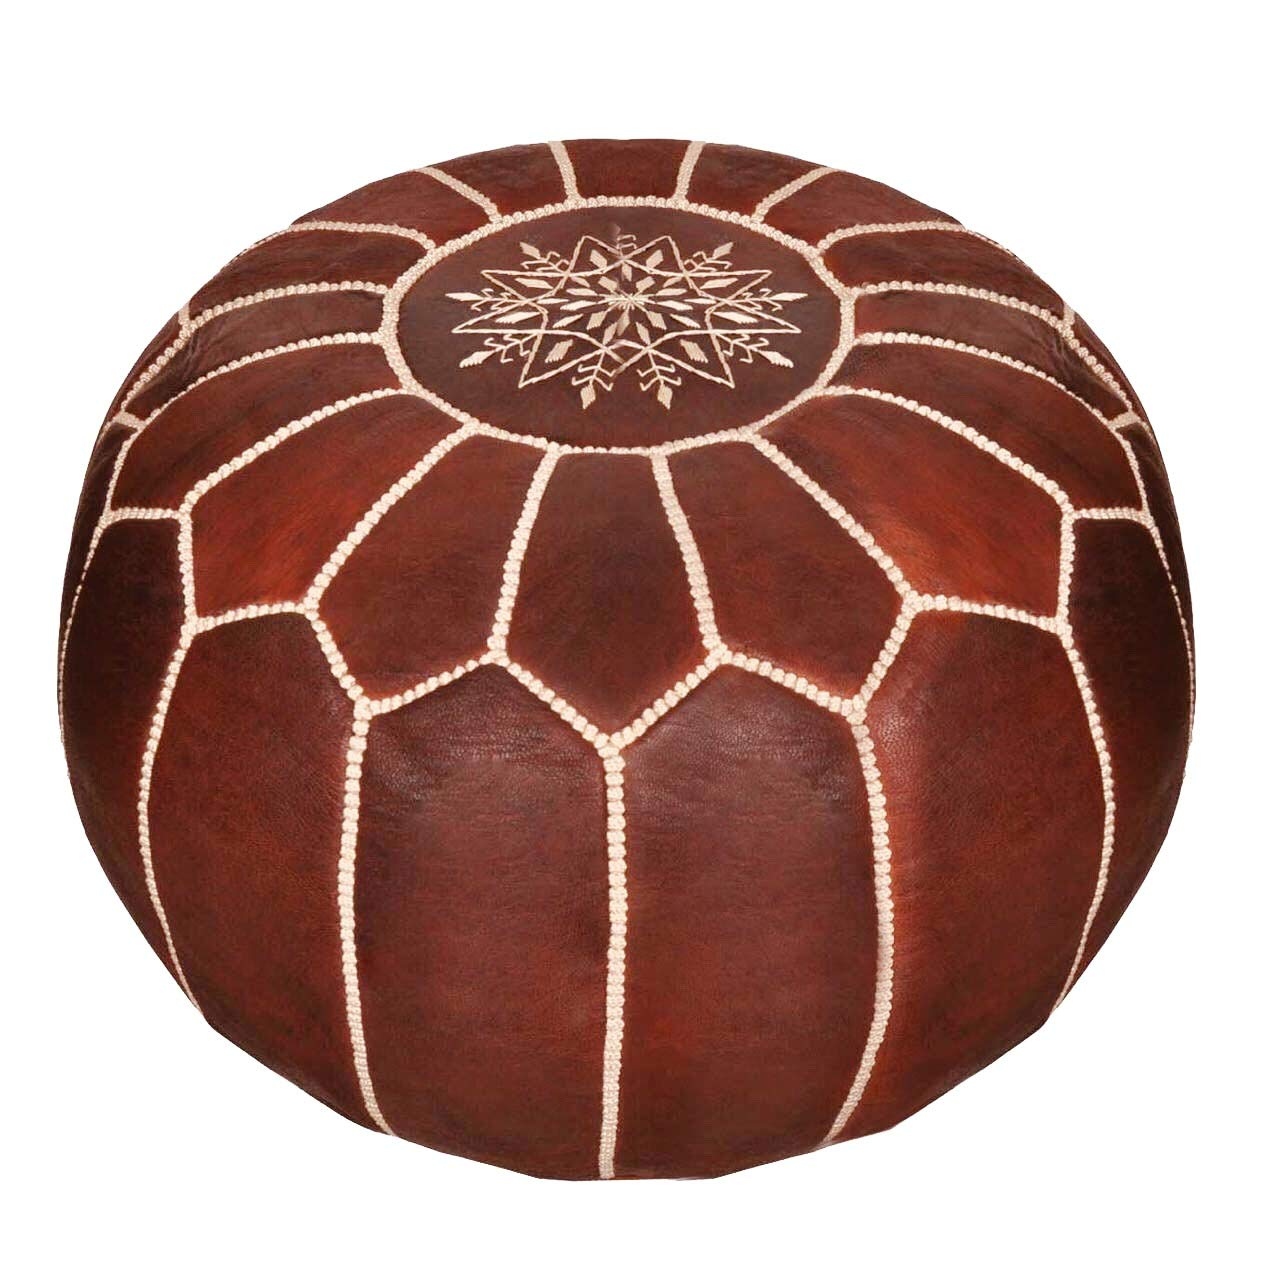 maisonmarrakech Handmade Leather Footstool Marrakech Tan Brown with White Stitching Unstuffed 23 x 12